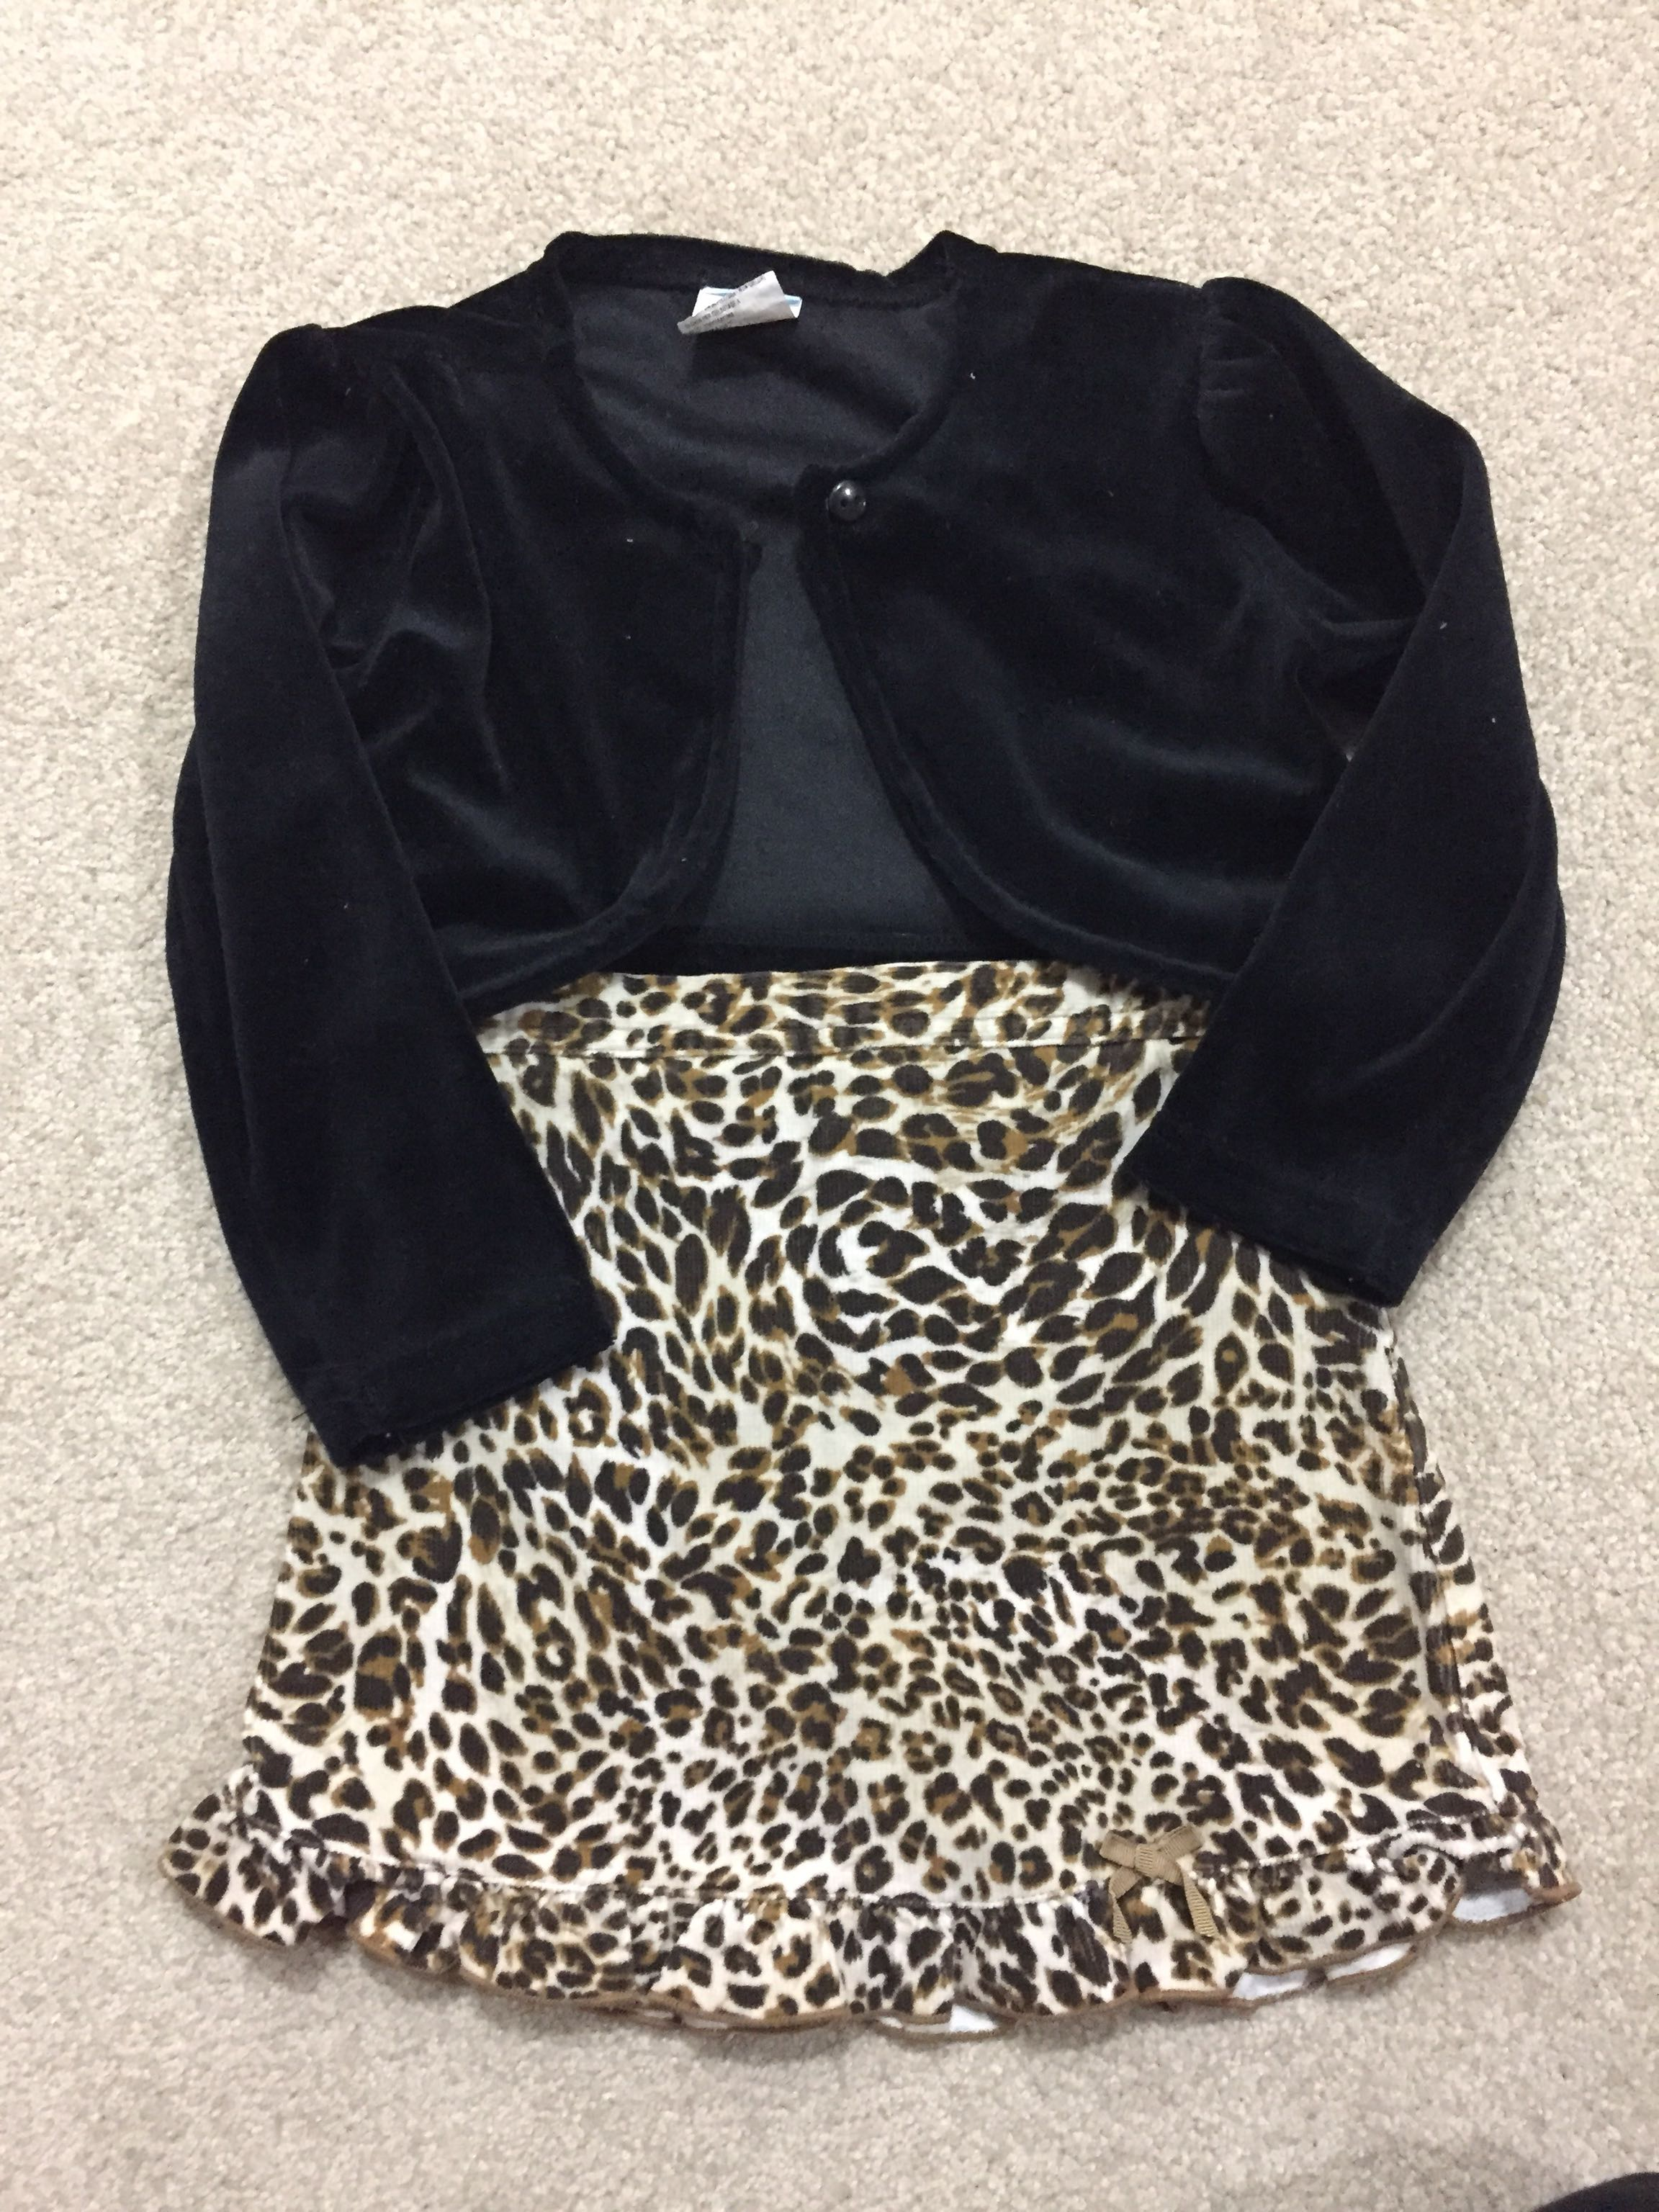 Size 4 Outfit